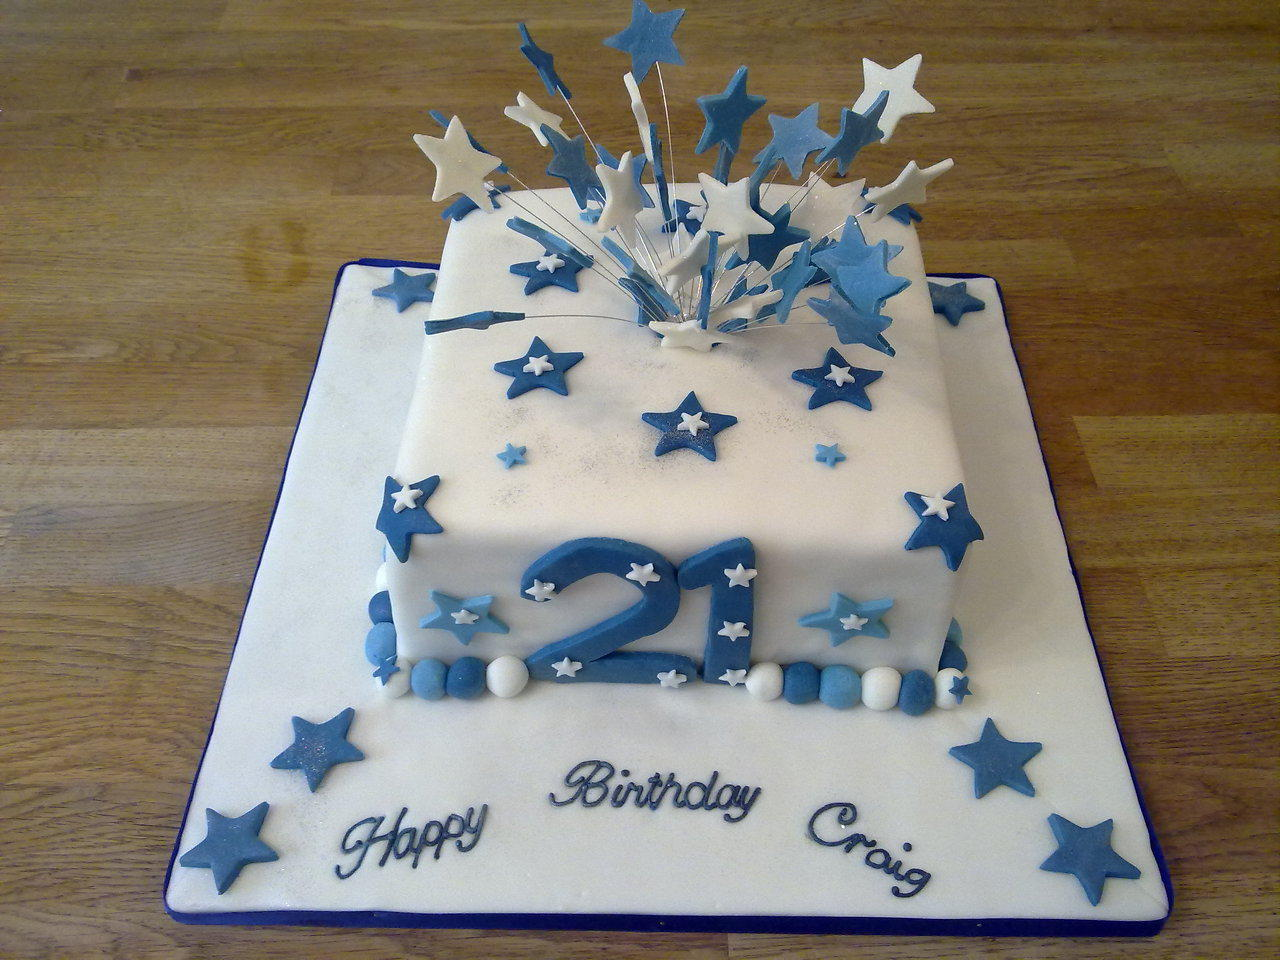 Swell 21St Birthday Cakes Decoration Ideas Little Birthday Cakes Funny Birthday Cards Online Alyptdamsfinfo